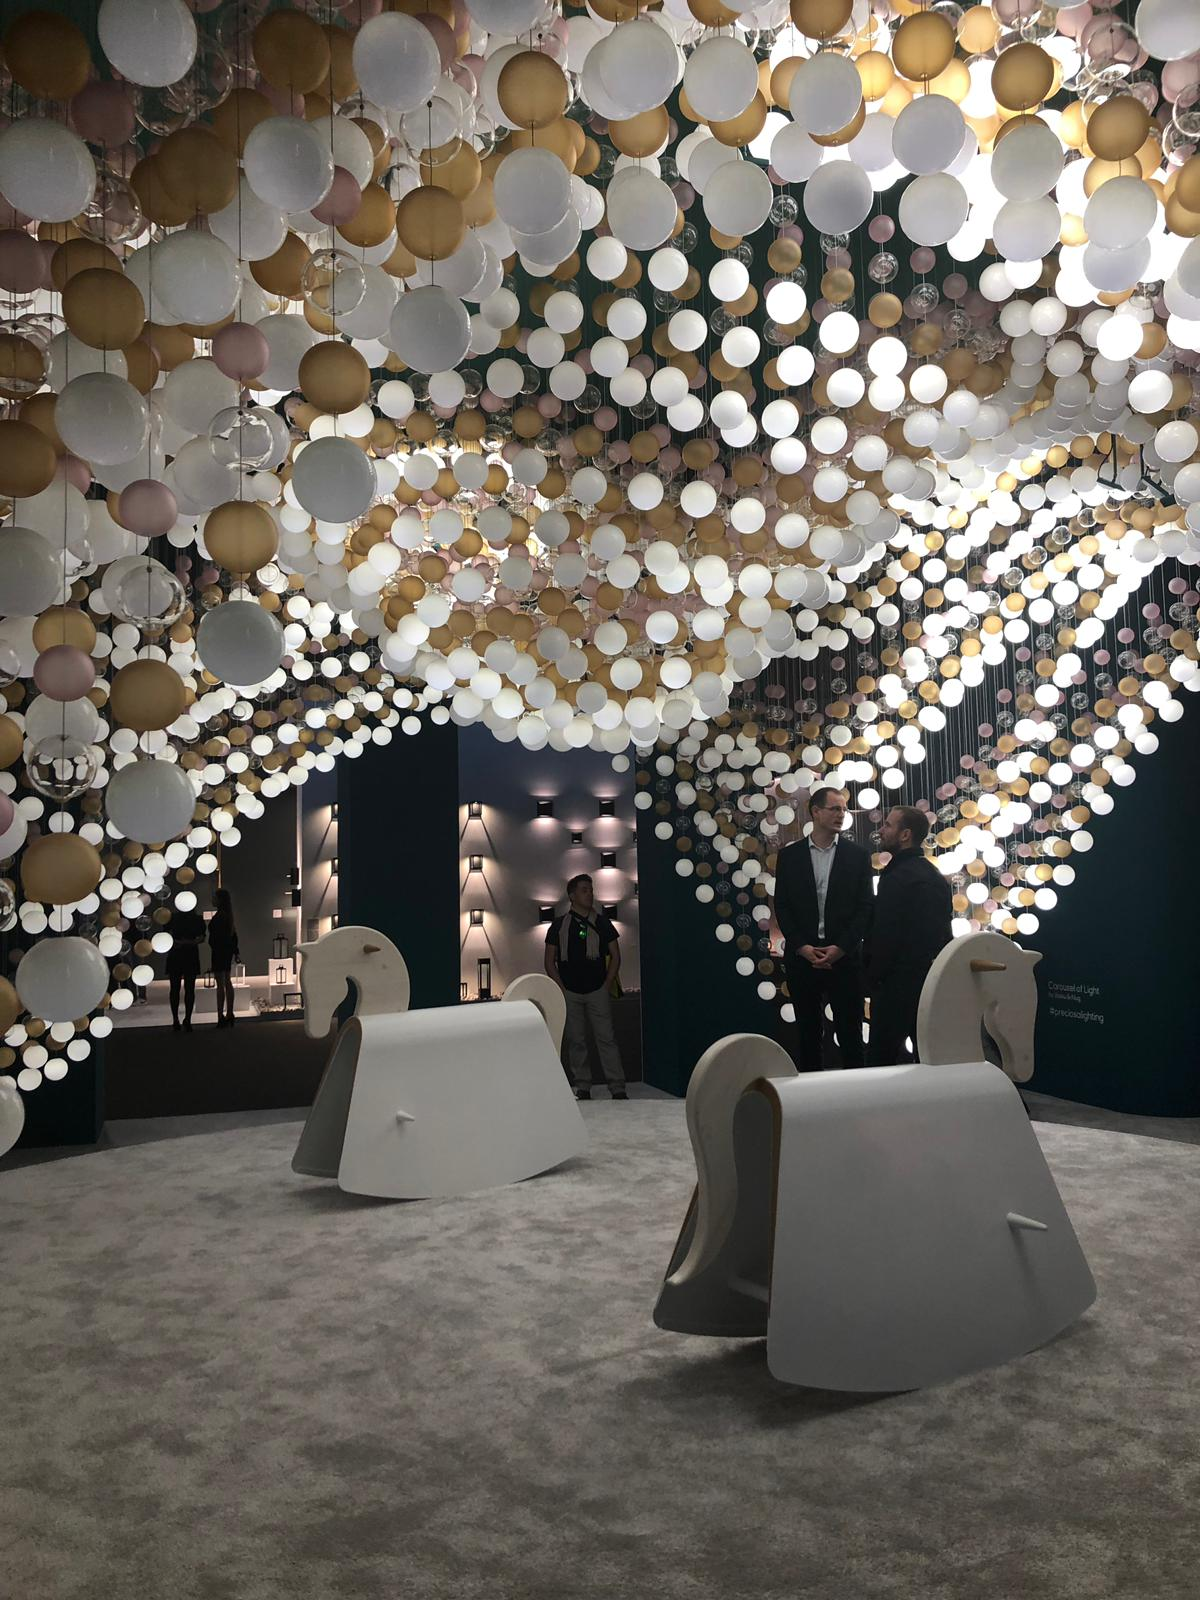 These Were The Best Lighting Stands In Milan Design Week milan design week These Were The Best Lighting Stands In Milan Design Week These Were The Best Lighting Stands In Milan Design Week